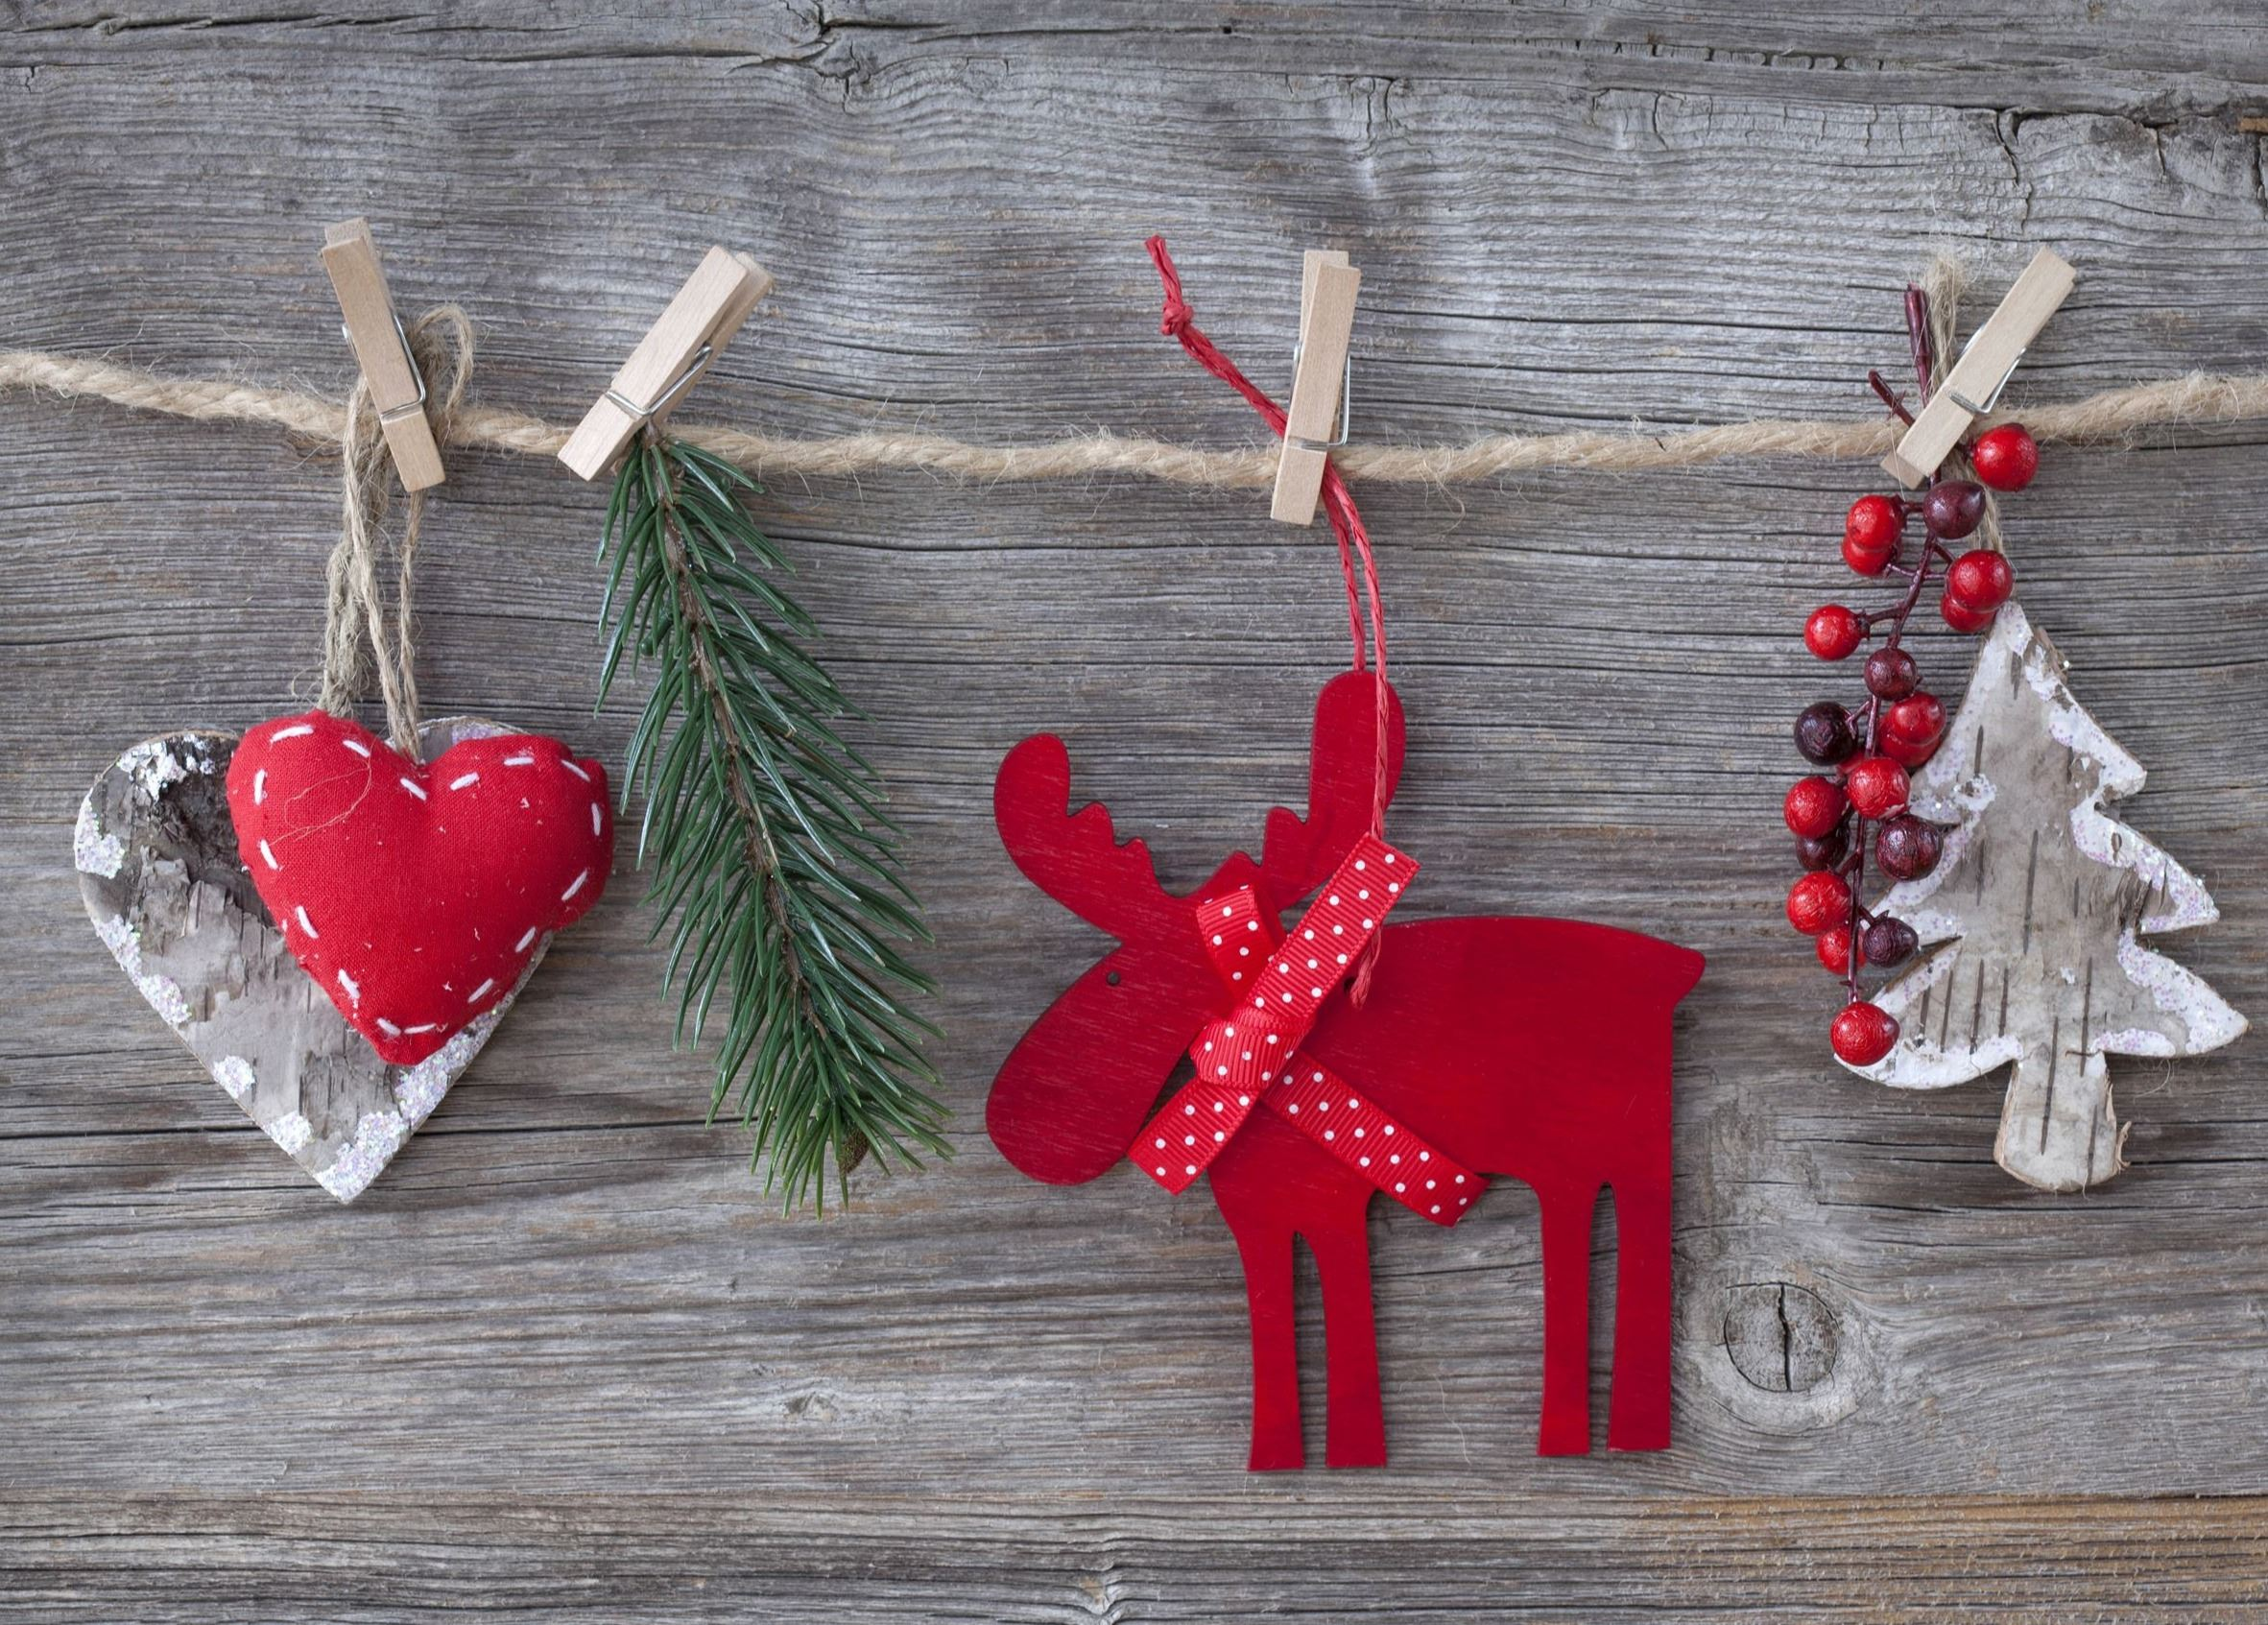 Close up of Christmas Decorations including hearts, pine branch, reindeer, berries, and Christmas tr